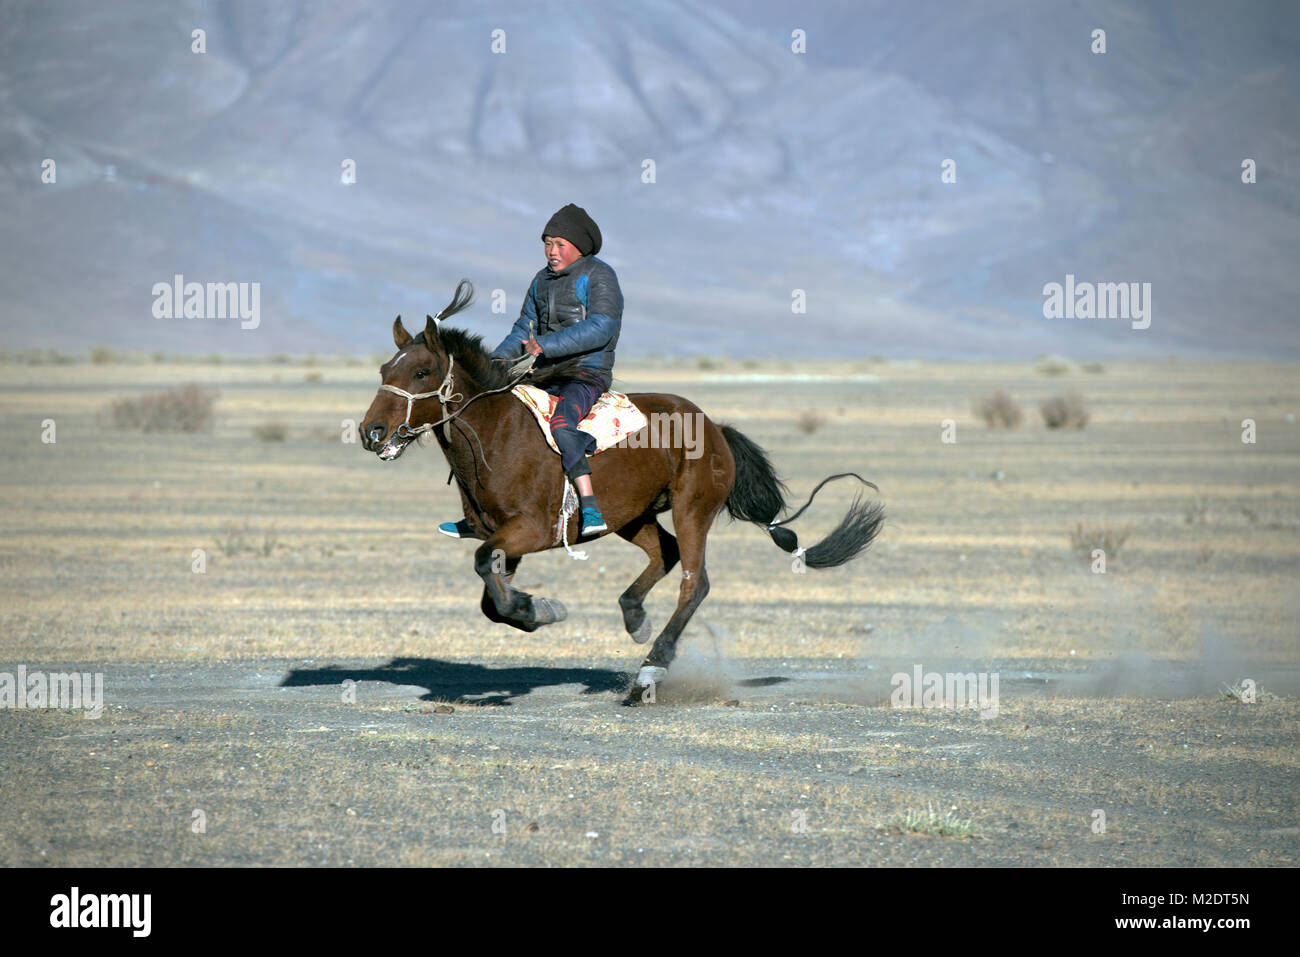 A young Kazakh boy demonstrates his horsemanship skill during a racing event. - Stock Image